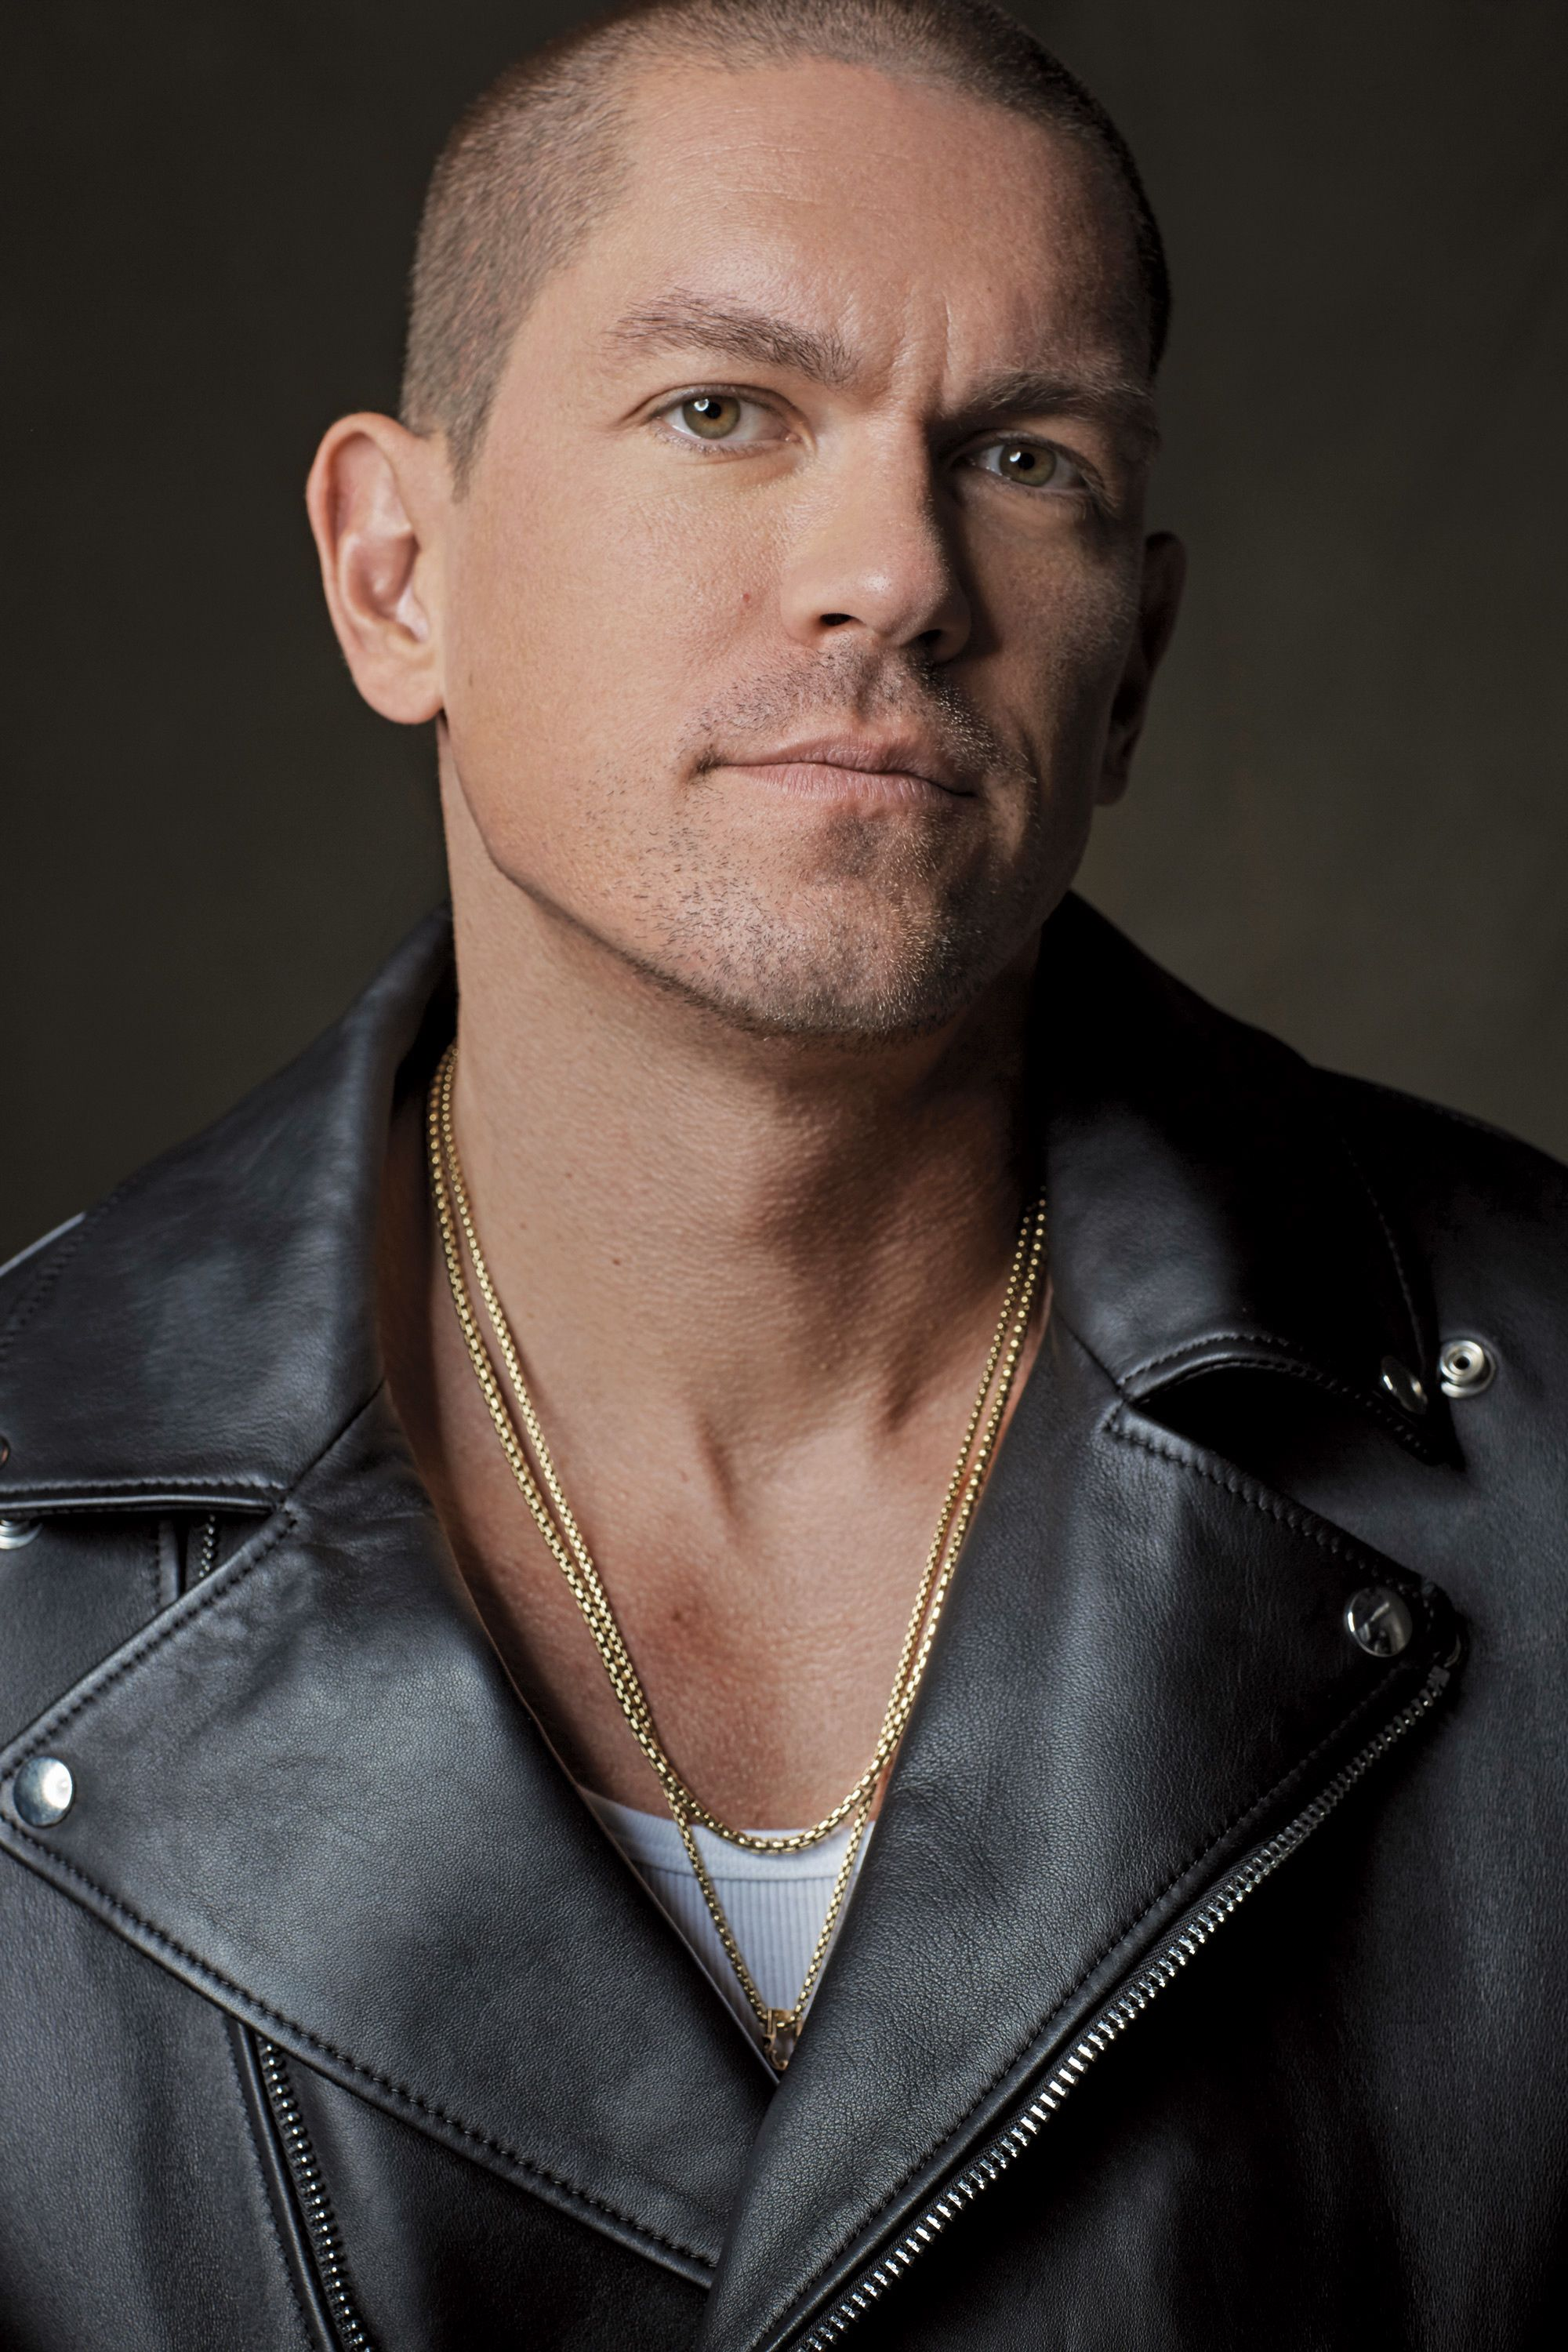 Actor Steve Howey in a leather motorcycle jacket.